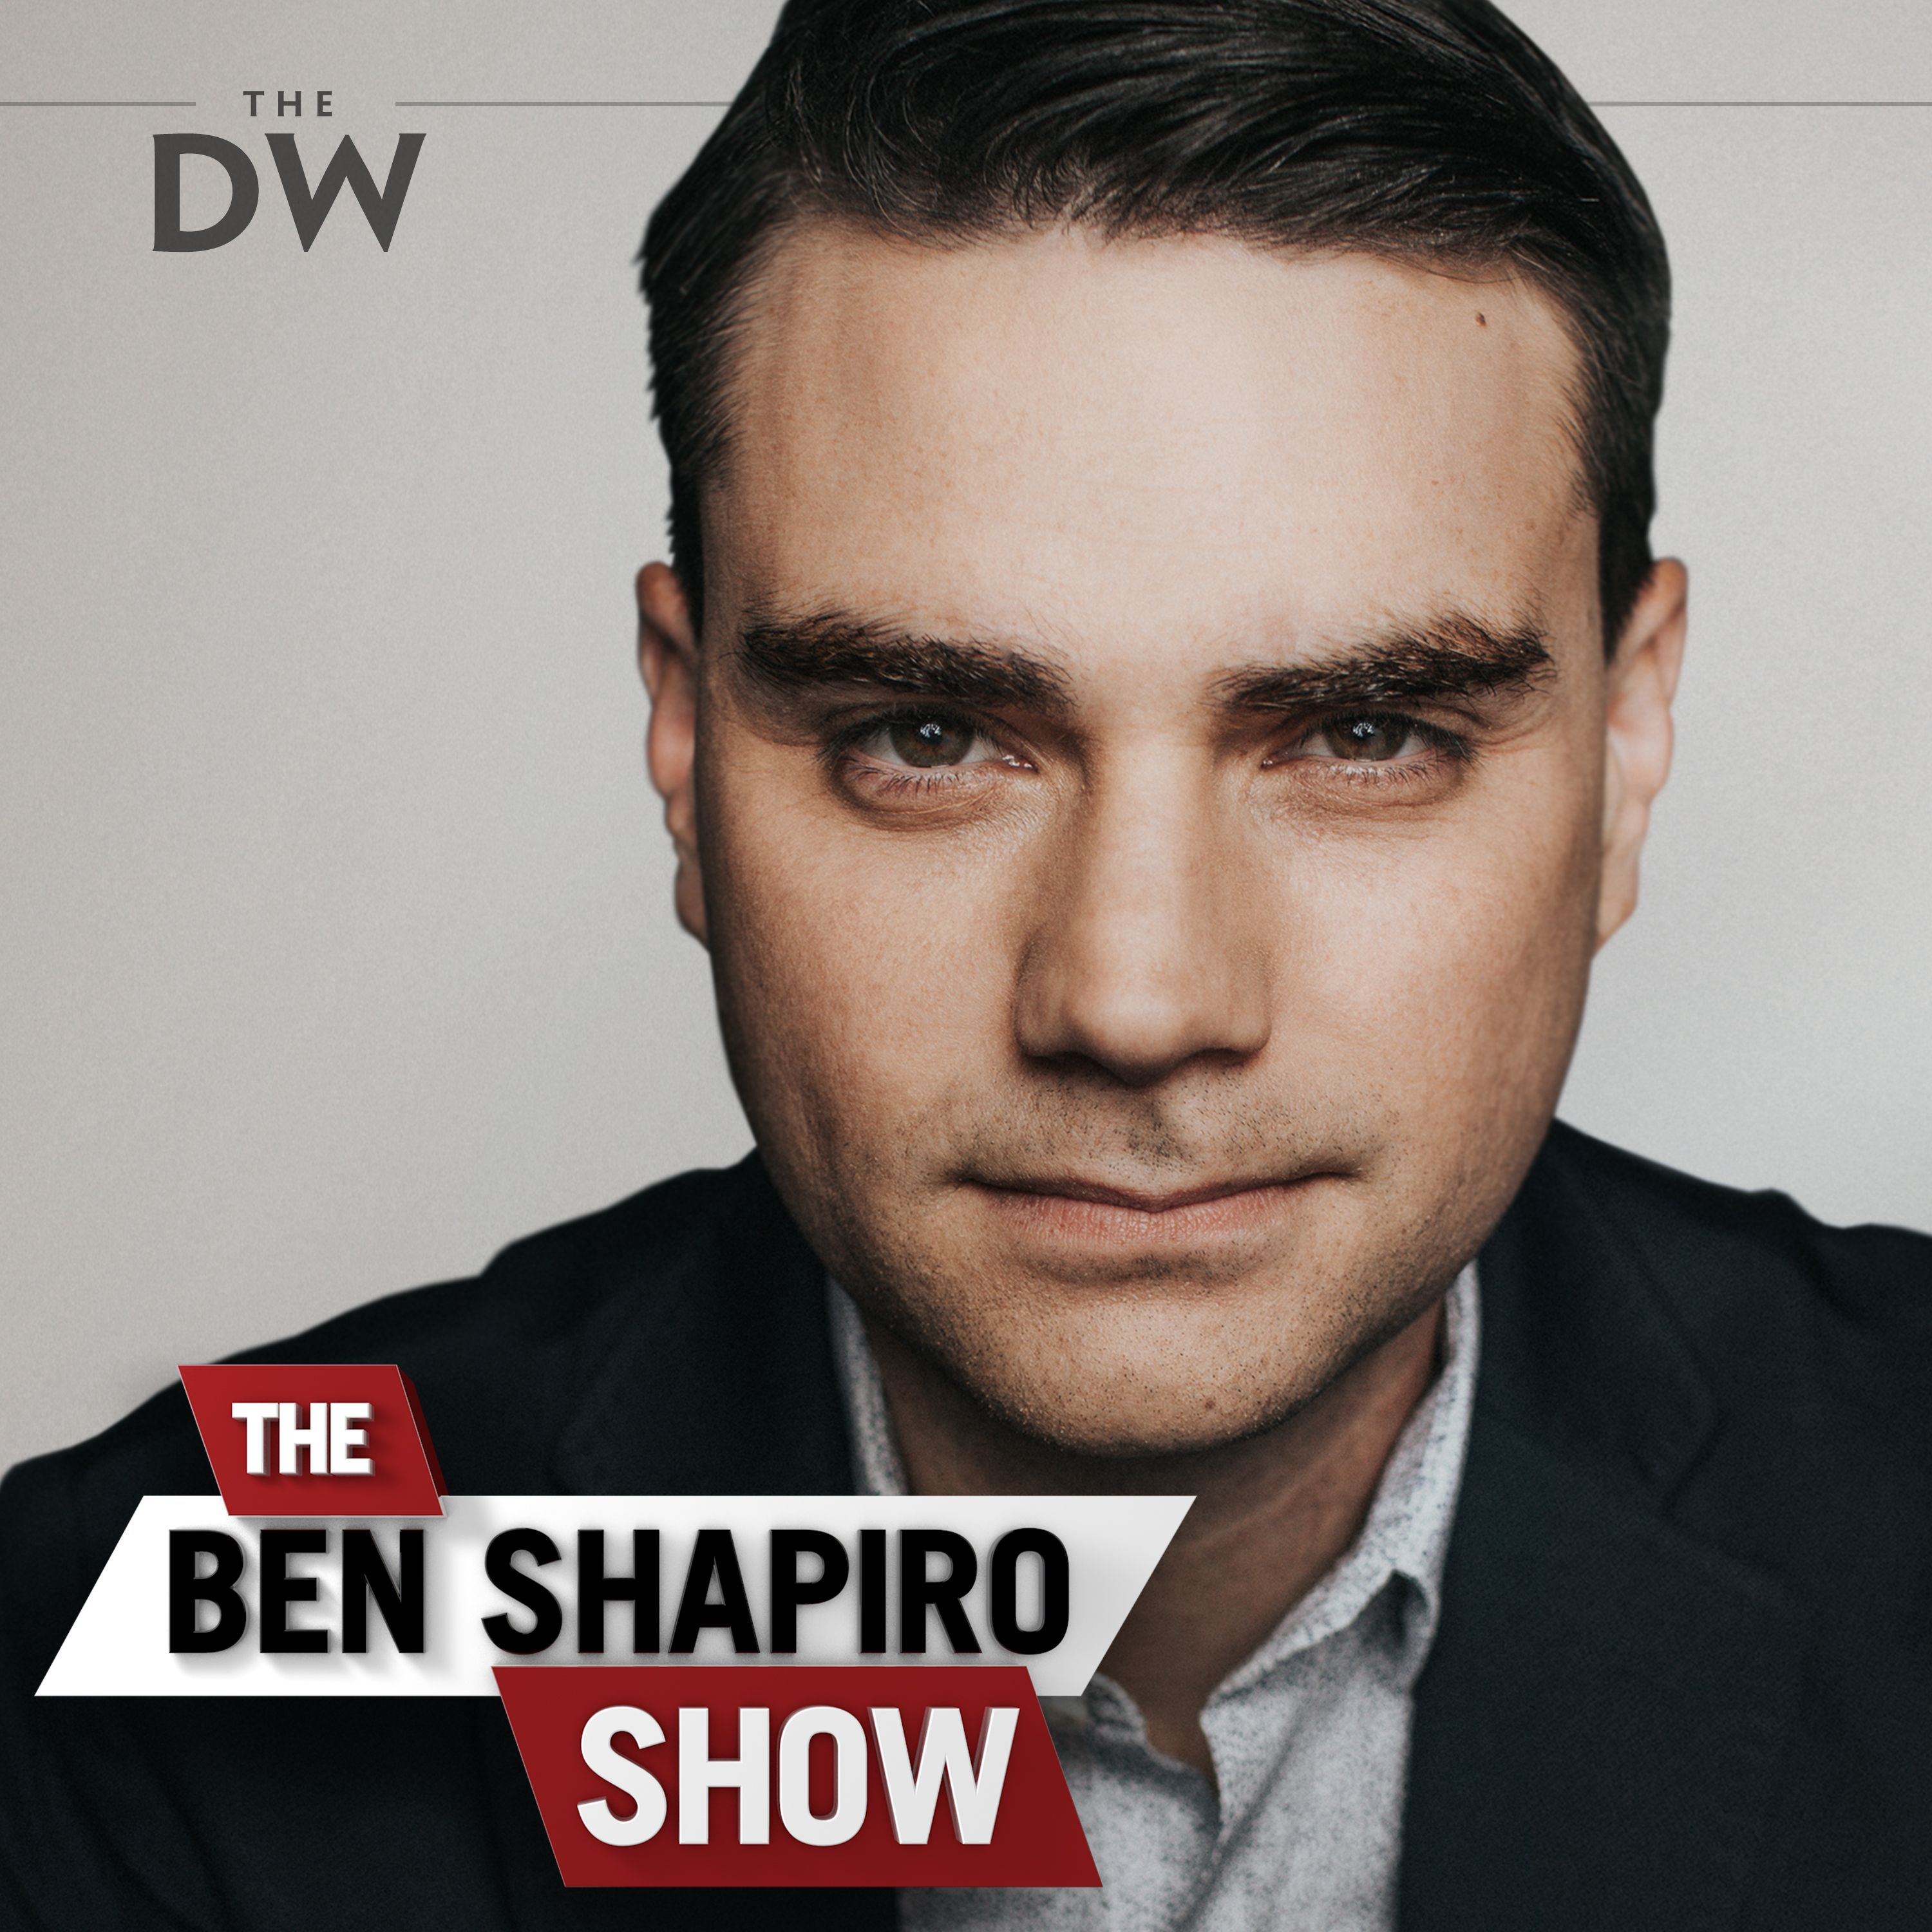 Ep. 798 - The Making Of A New York Times Smear Job